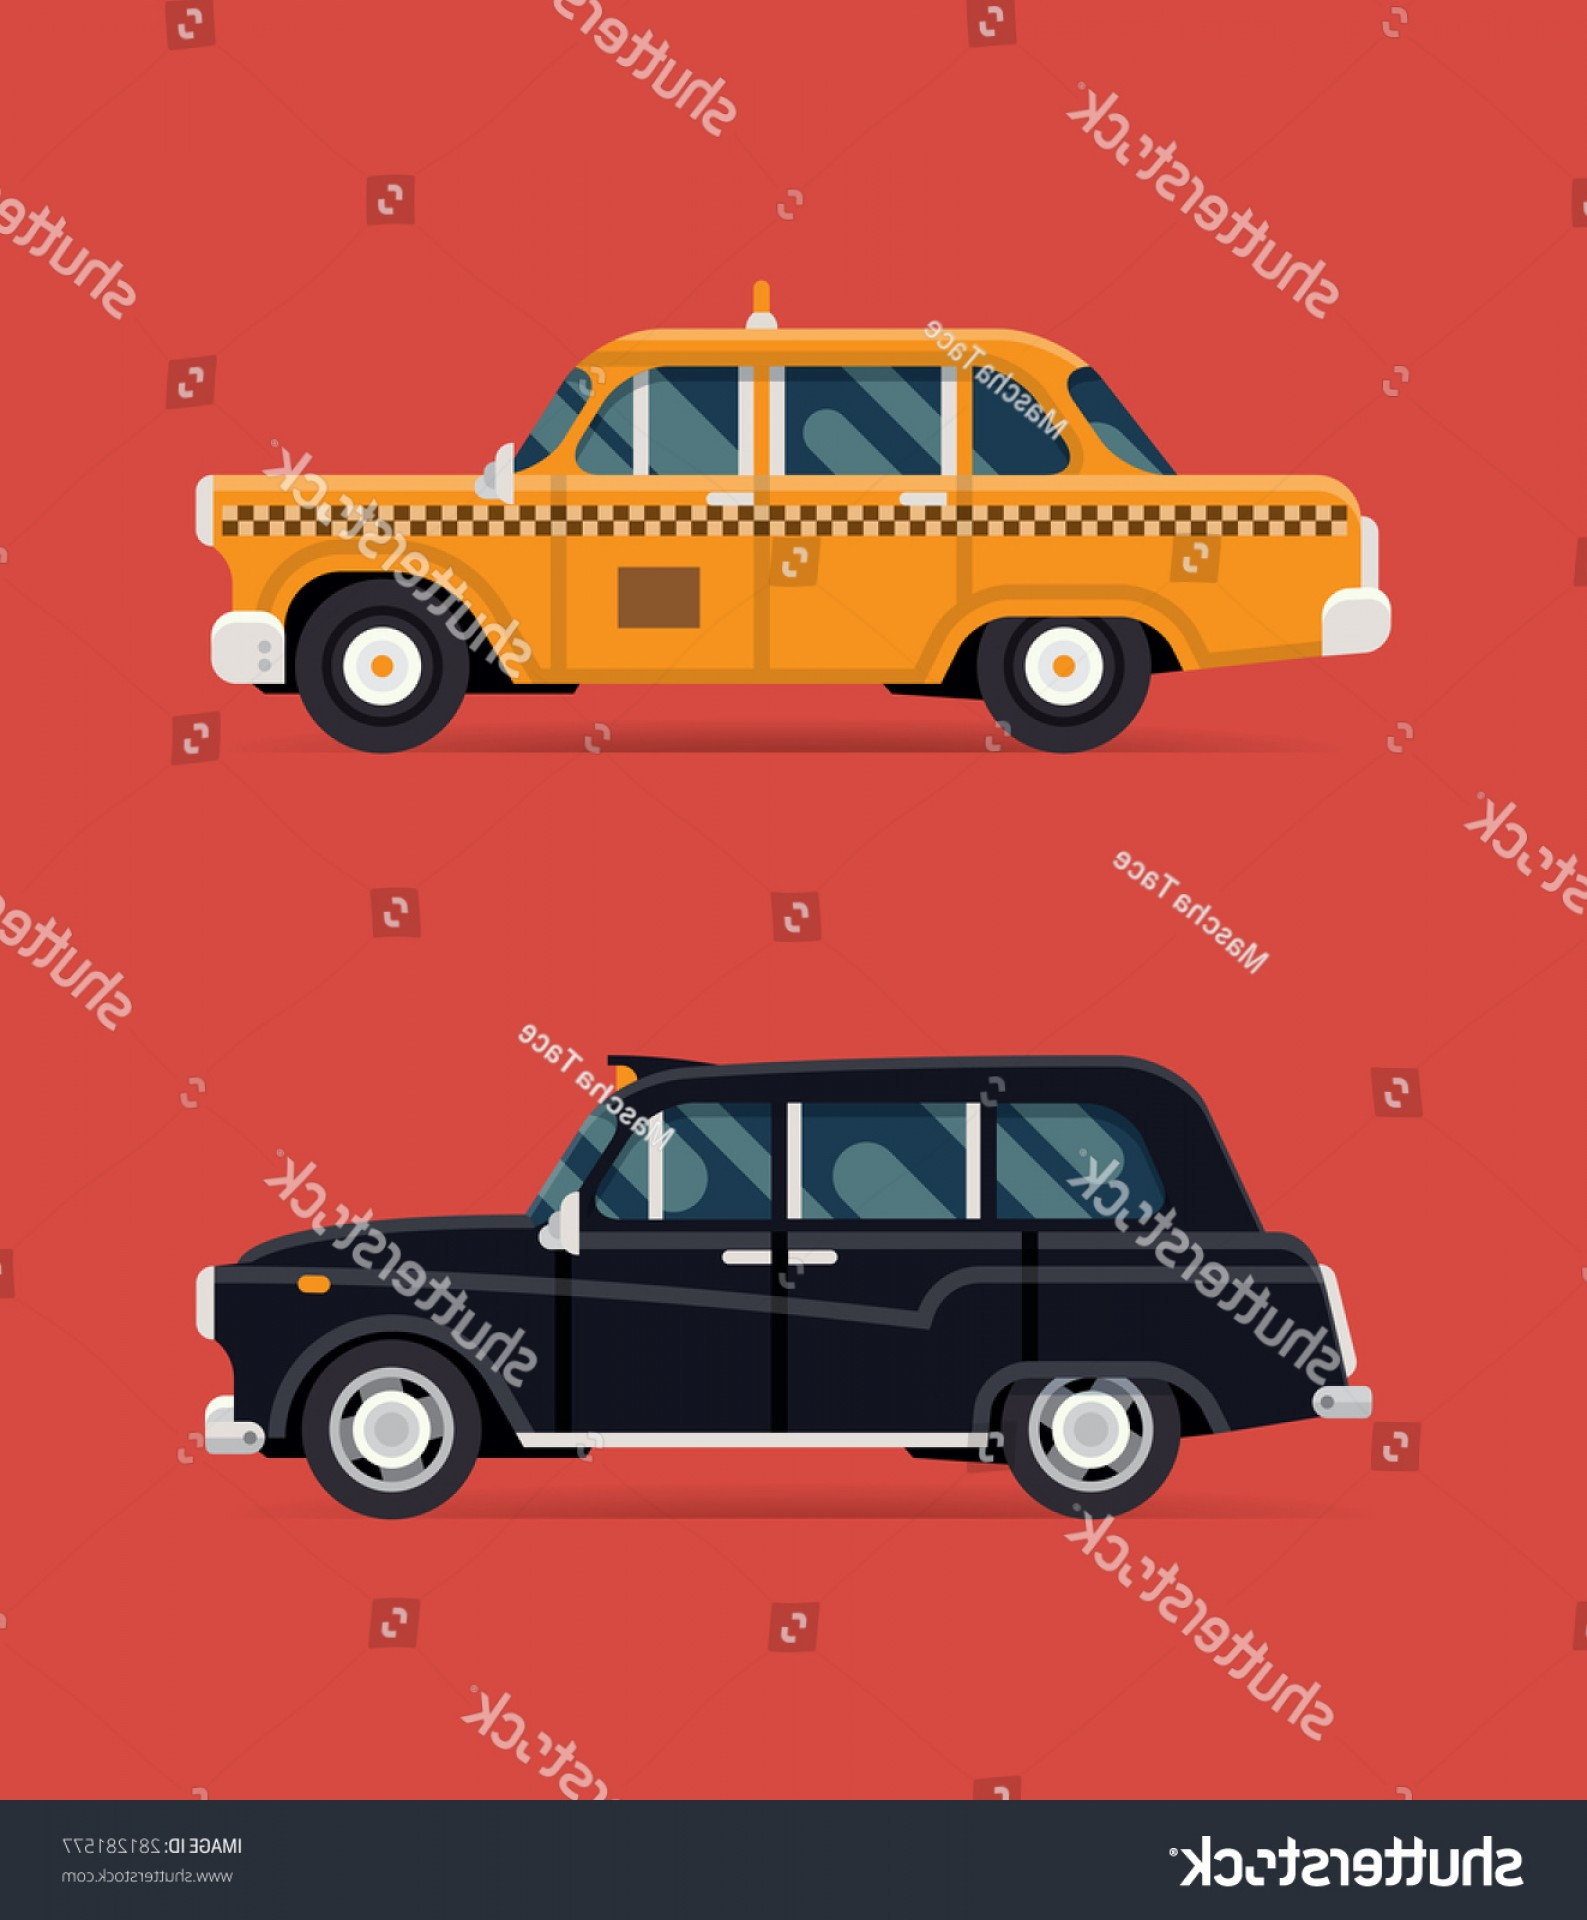 New York Taxi Cab Vector: Cool Vector Modern Flat Design Illustration